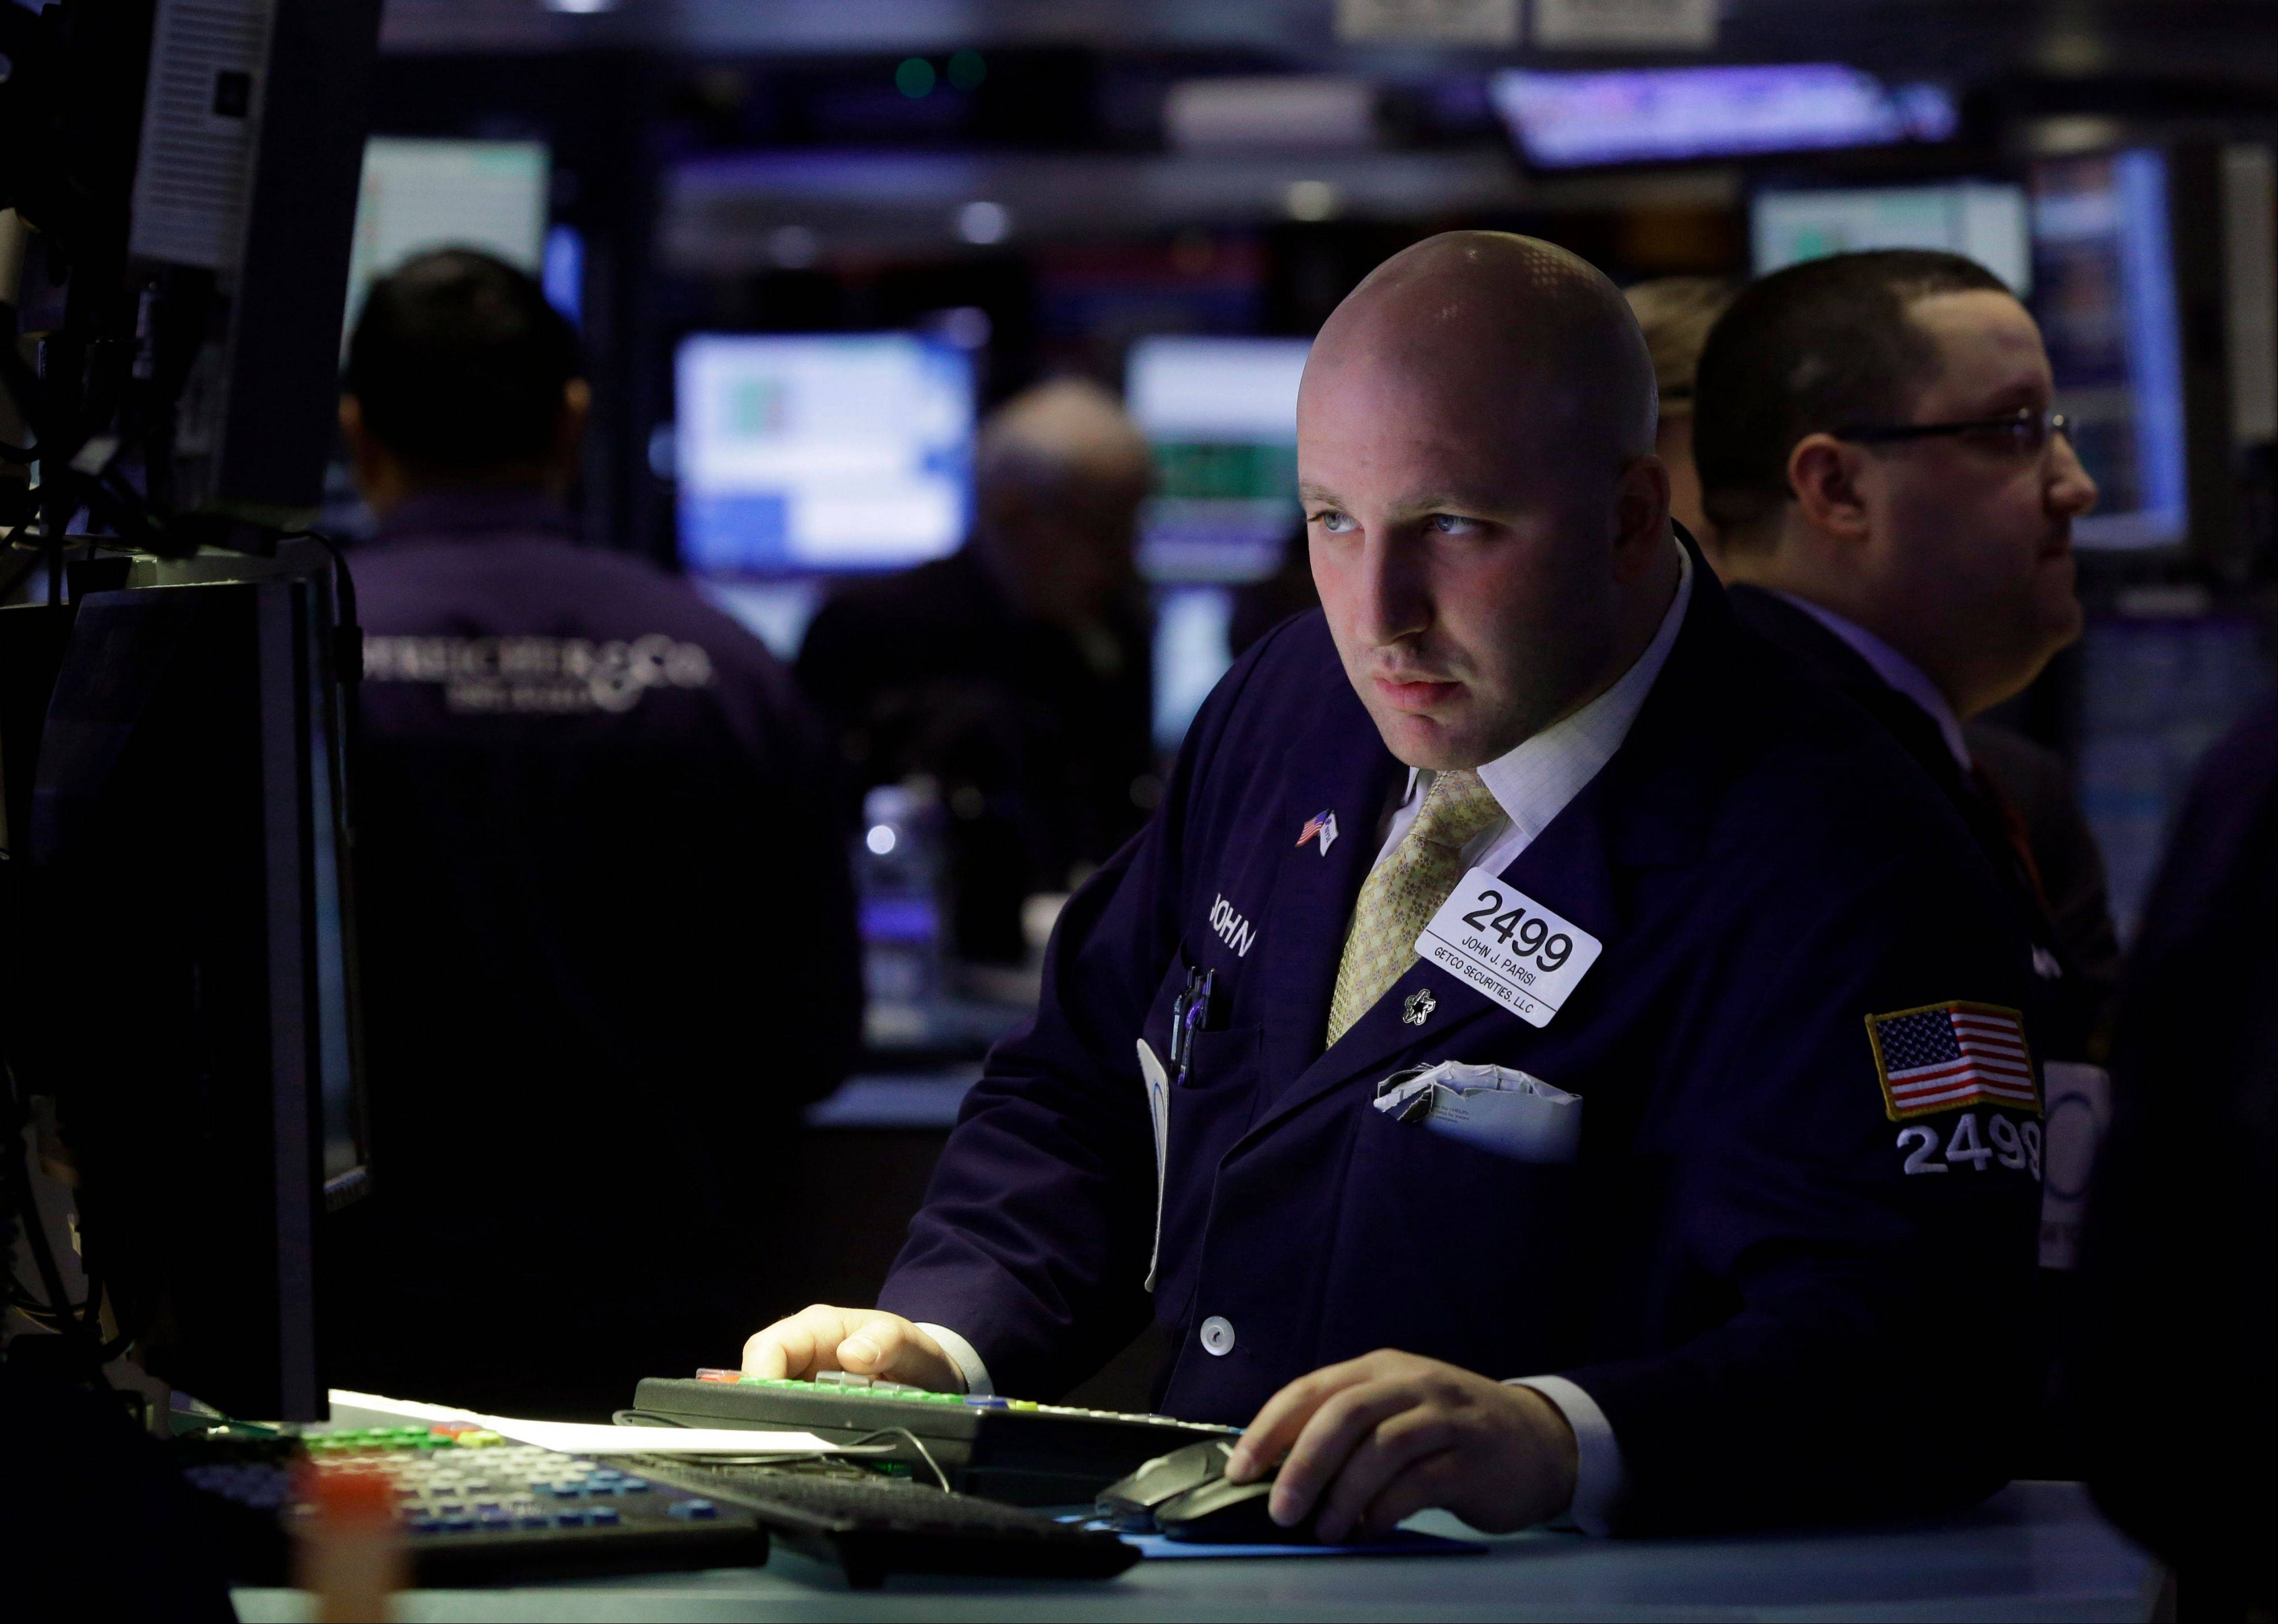 Specialist Joe Parisi works Thursday at his post on the floor of the New York Stock Exchange, in New York. Disappointing news about Germany's economy sent Asian stock markets down on Friday.